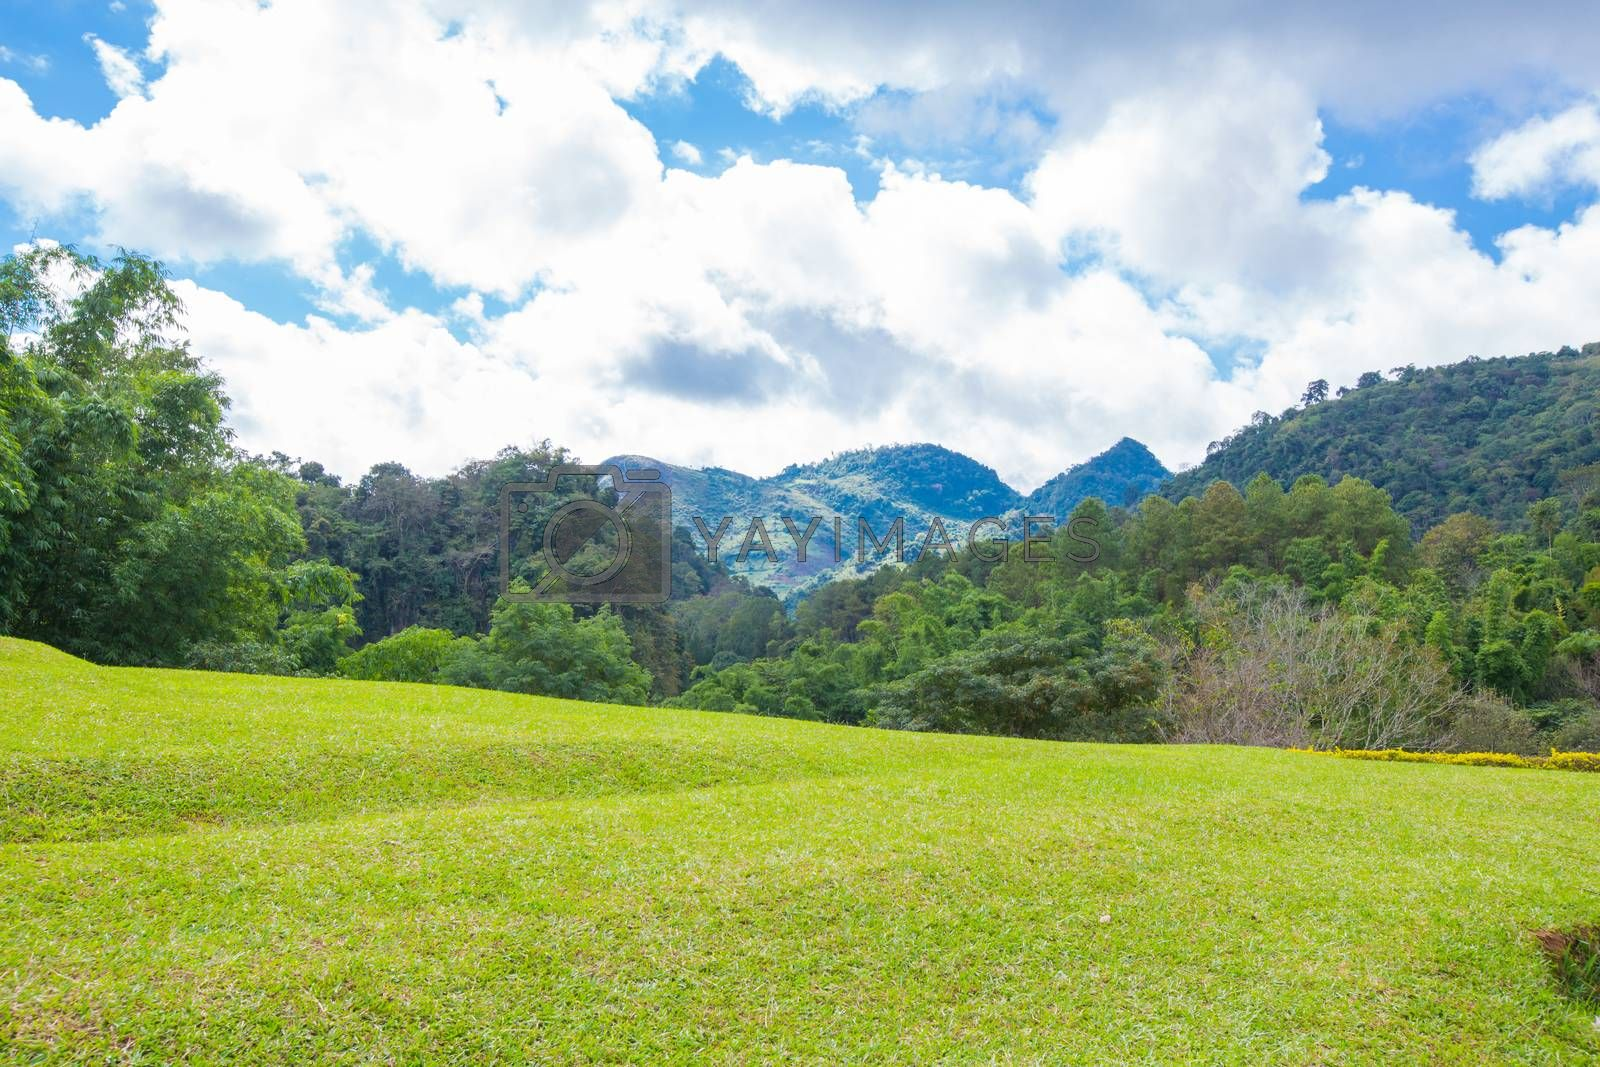 Royalty free image of green hills by tuchkay